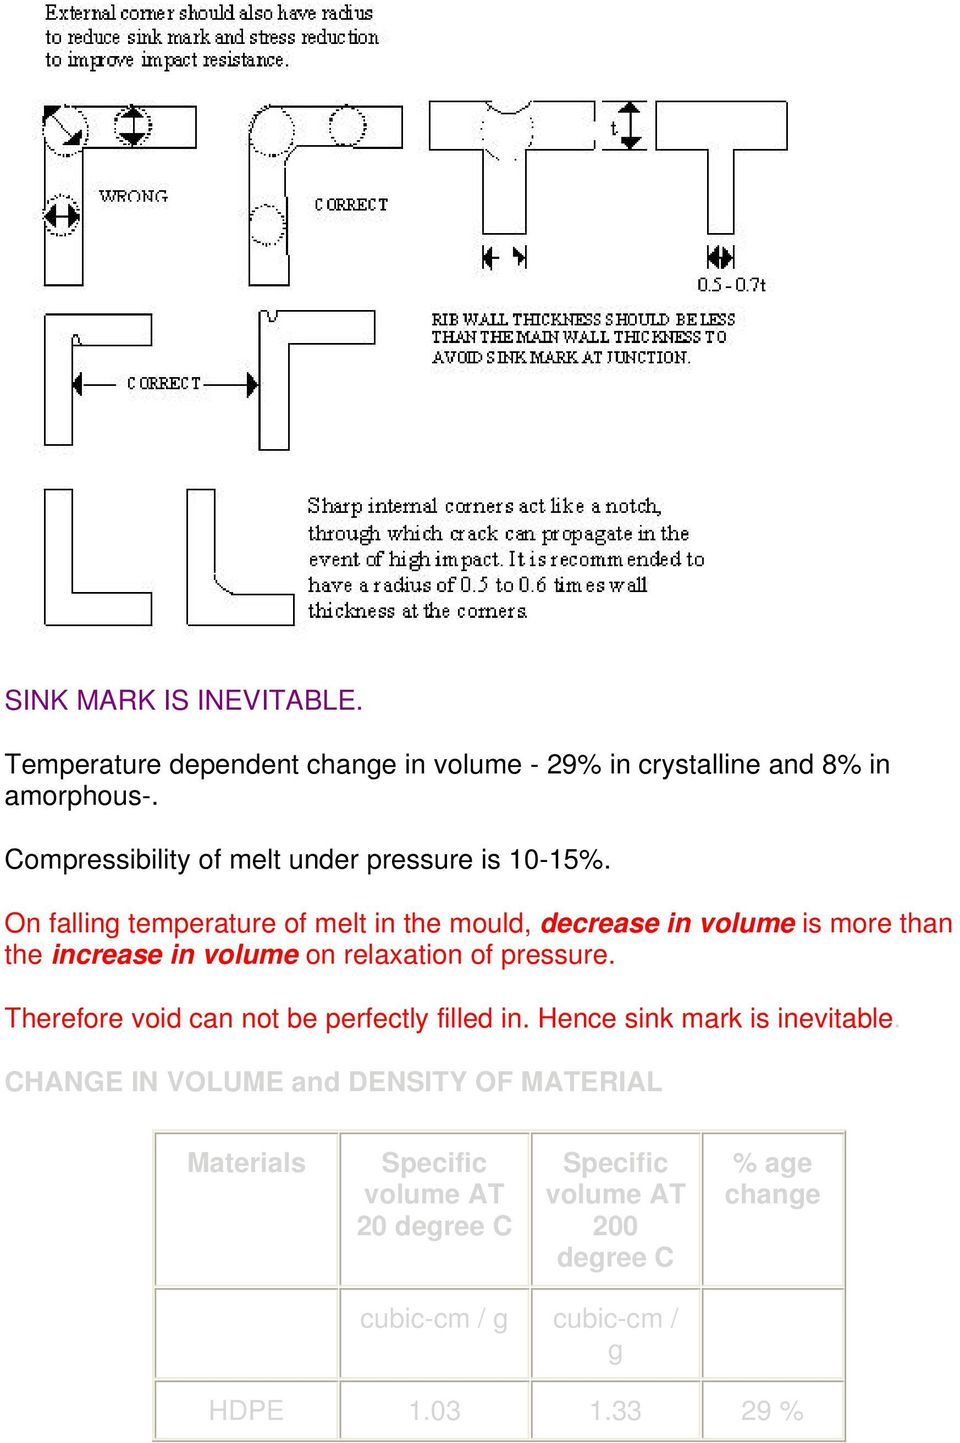 On falling temperature of melt in the mould, decrease in volume is more than the increase in volume on relaxation of pressure.